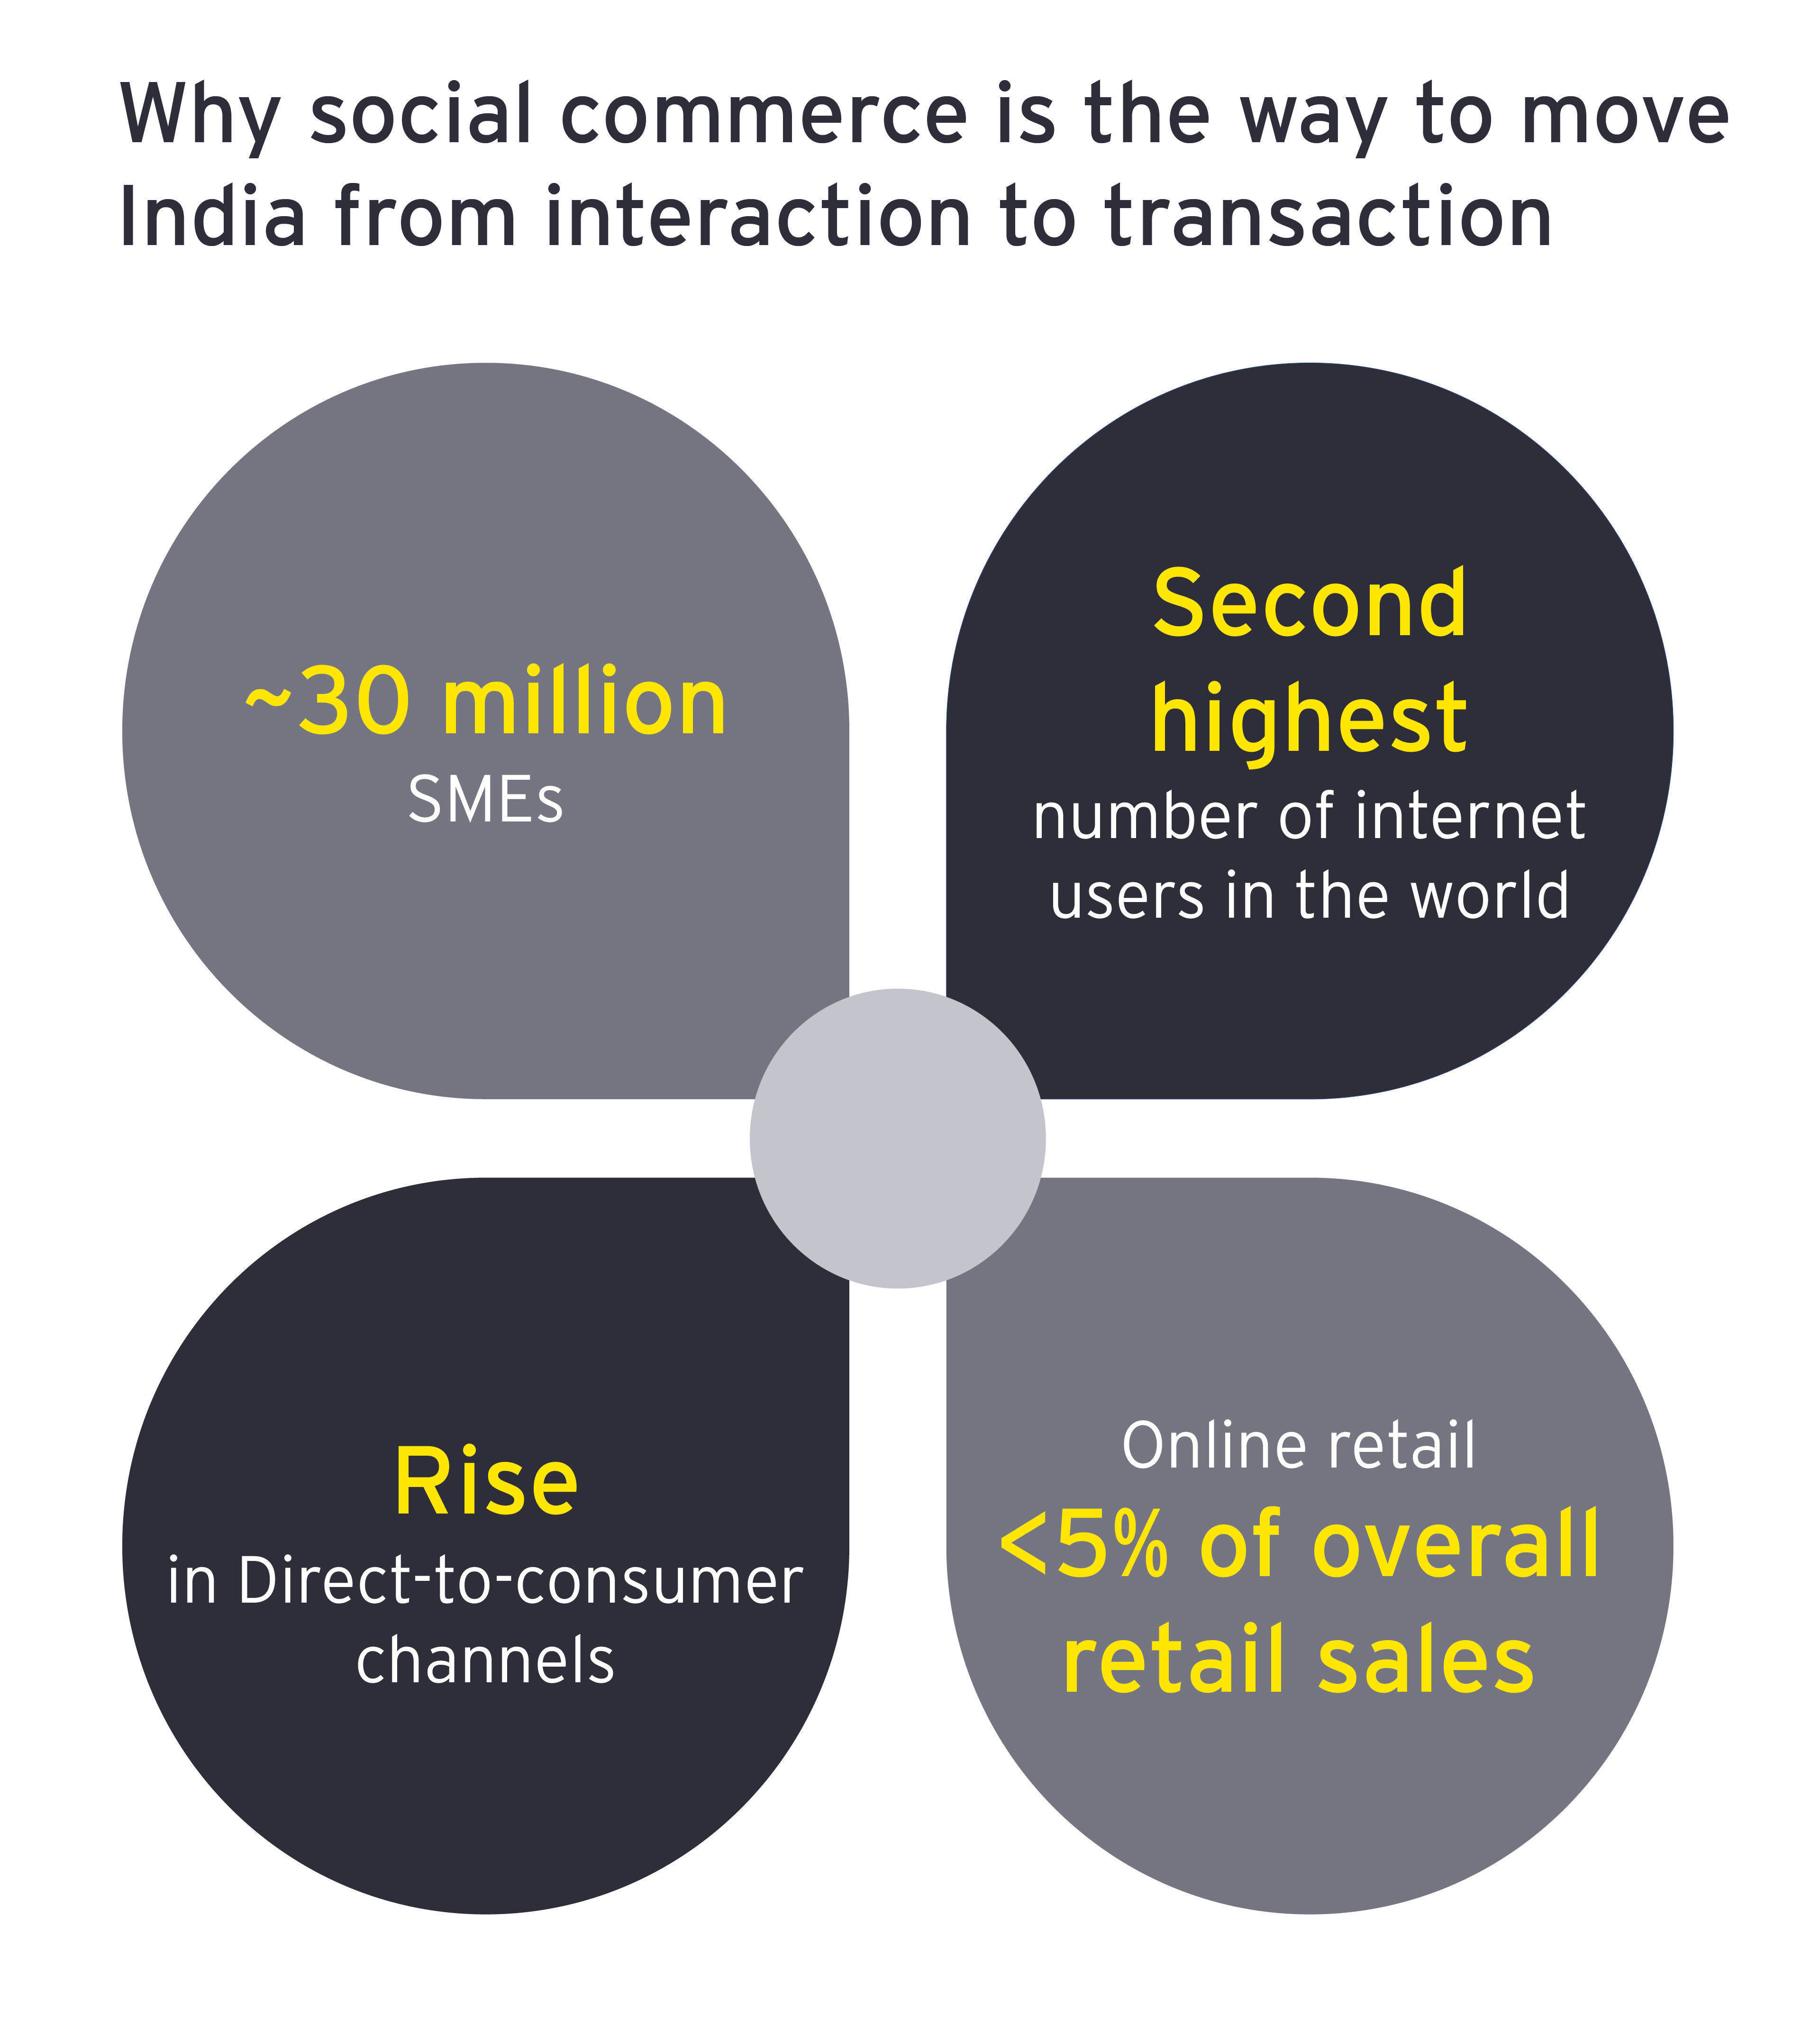 Why social commerce is the way to move India from interaction to transaction